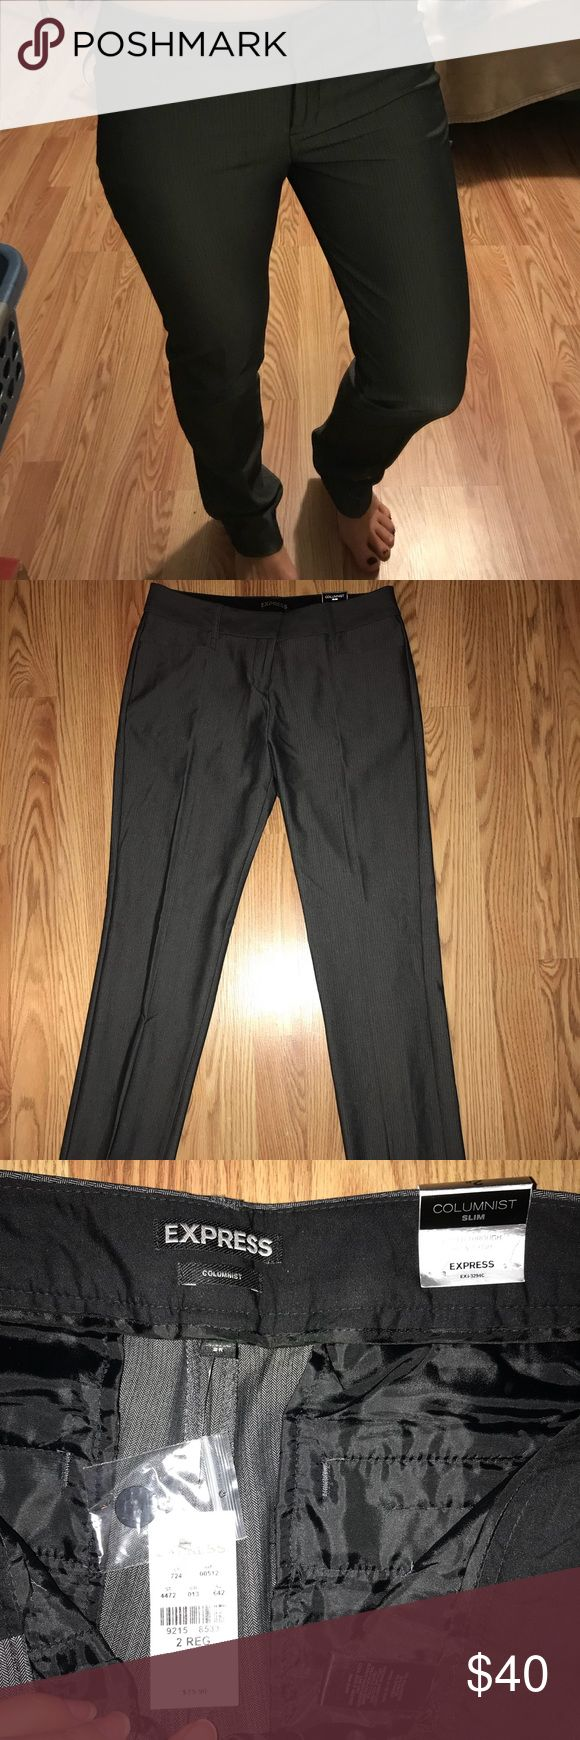 Express columnist slim NEW NEVER BEEN WORN! I am typically a 4 in American eagle but these fit perfectly and are comfortable! Have had them for awhile and never ended up needing to wear them! Definitely a good pair of business pants for a good price! Express Pants Straight Leg